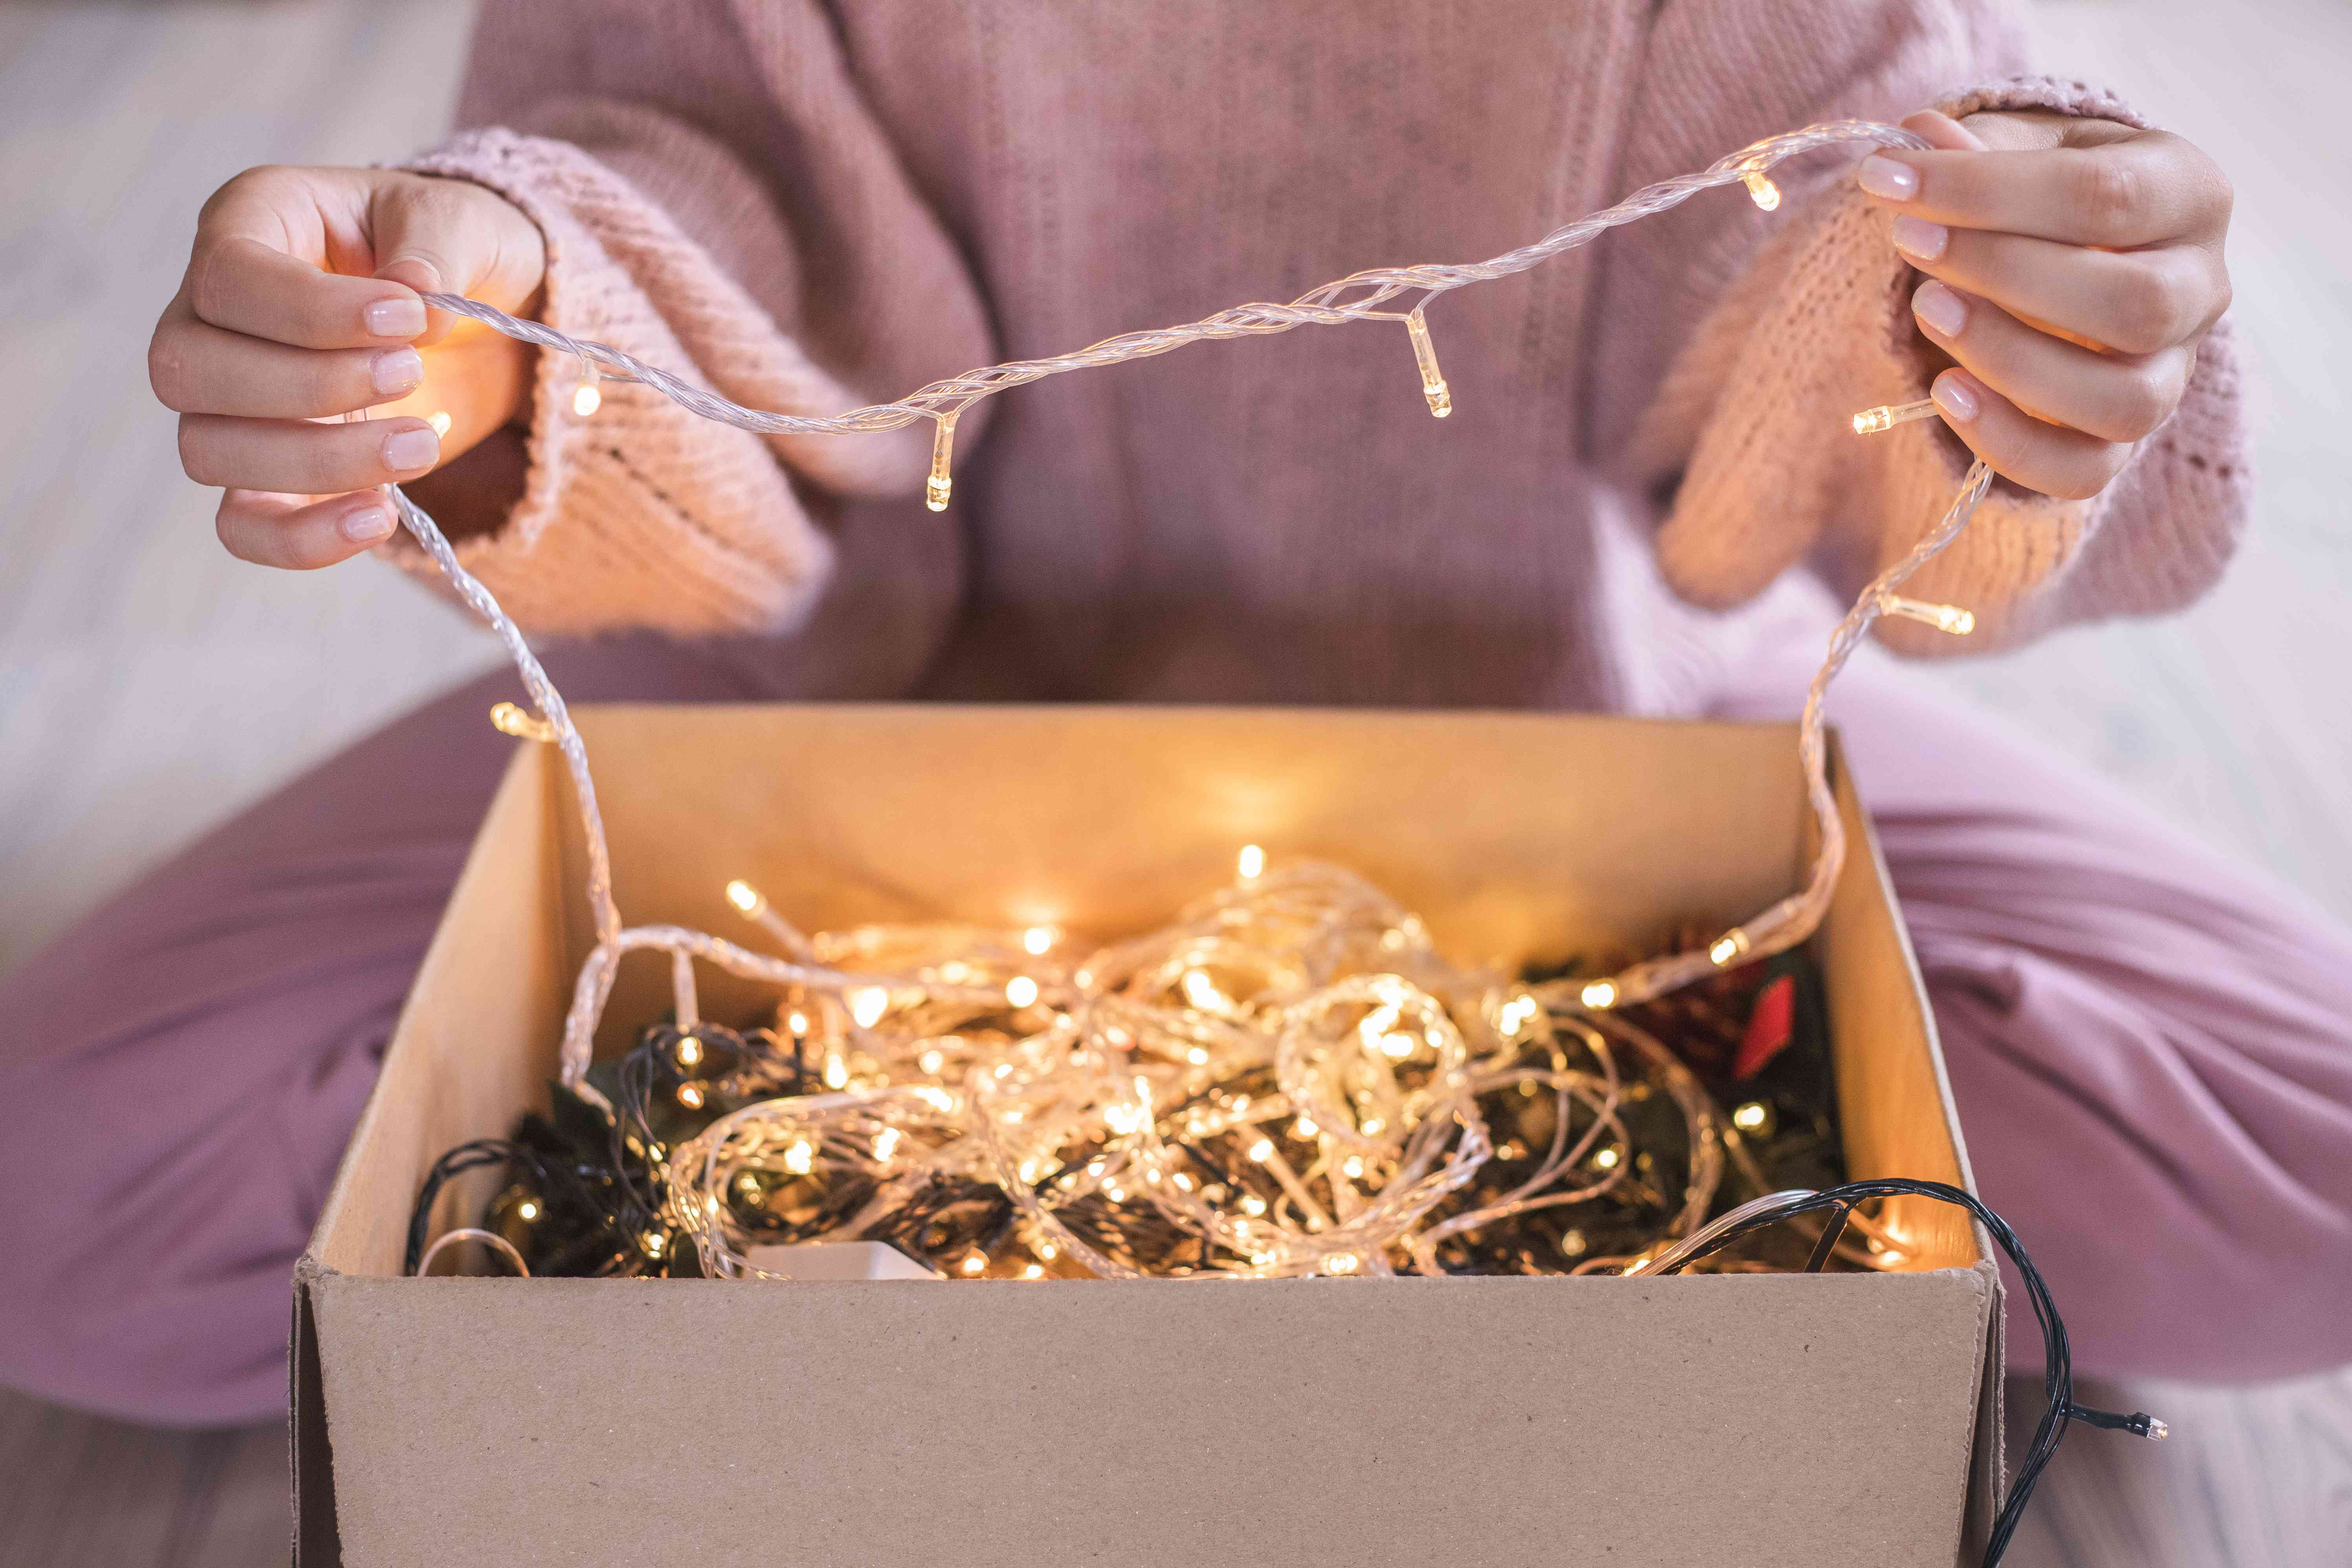 woman in pink sweater and pants pulls out strand of glowing Christmas lights from box